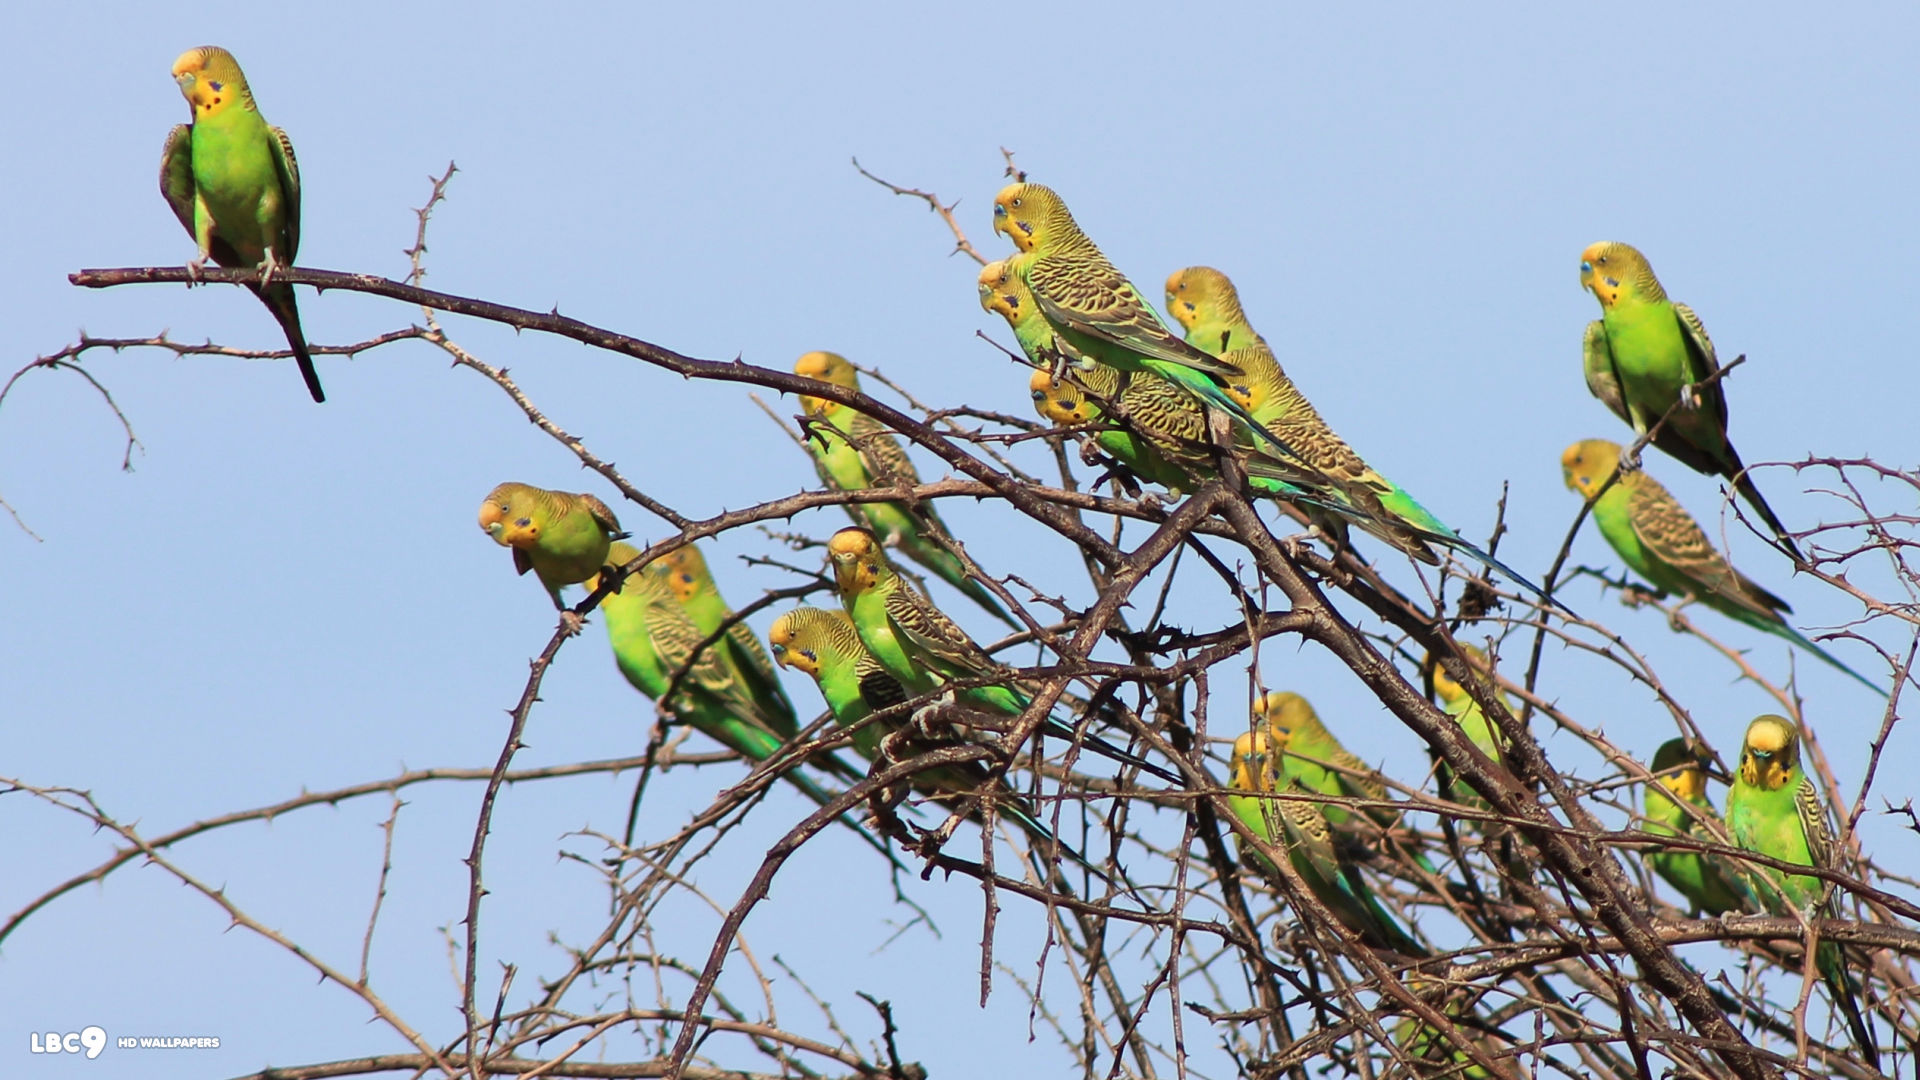 Budgies Images Flock Of Budgie Hd Wallpaper And Background